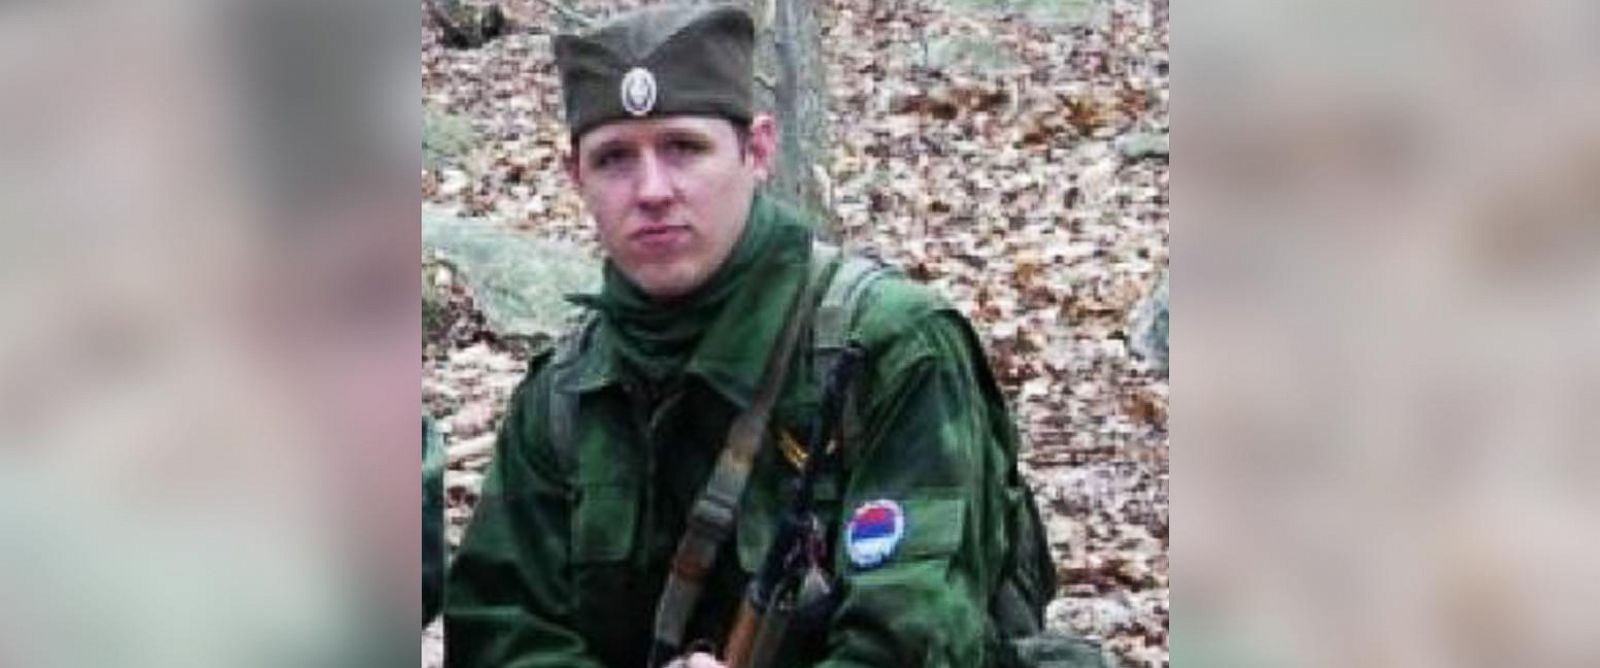 PHOTO: Police said suspect Eric Frein is part of a military simulation group.